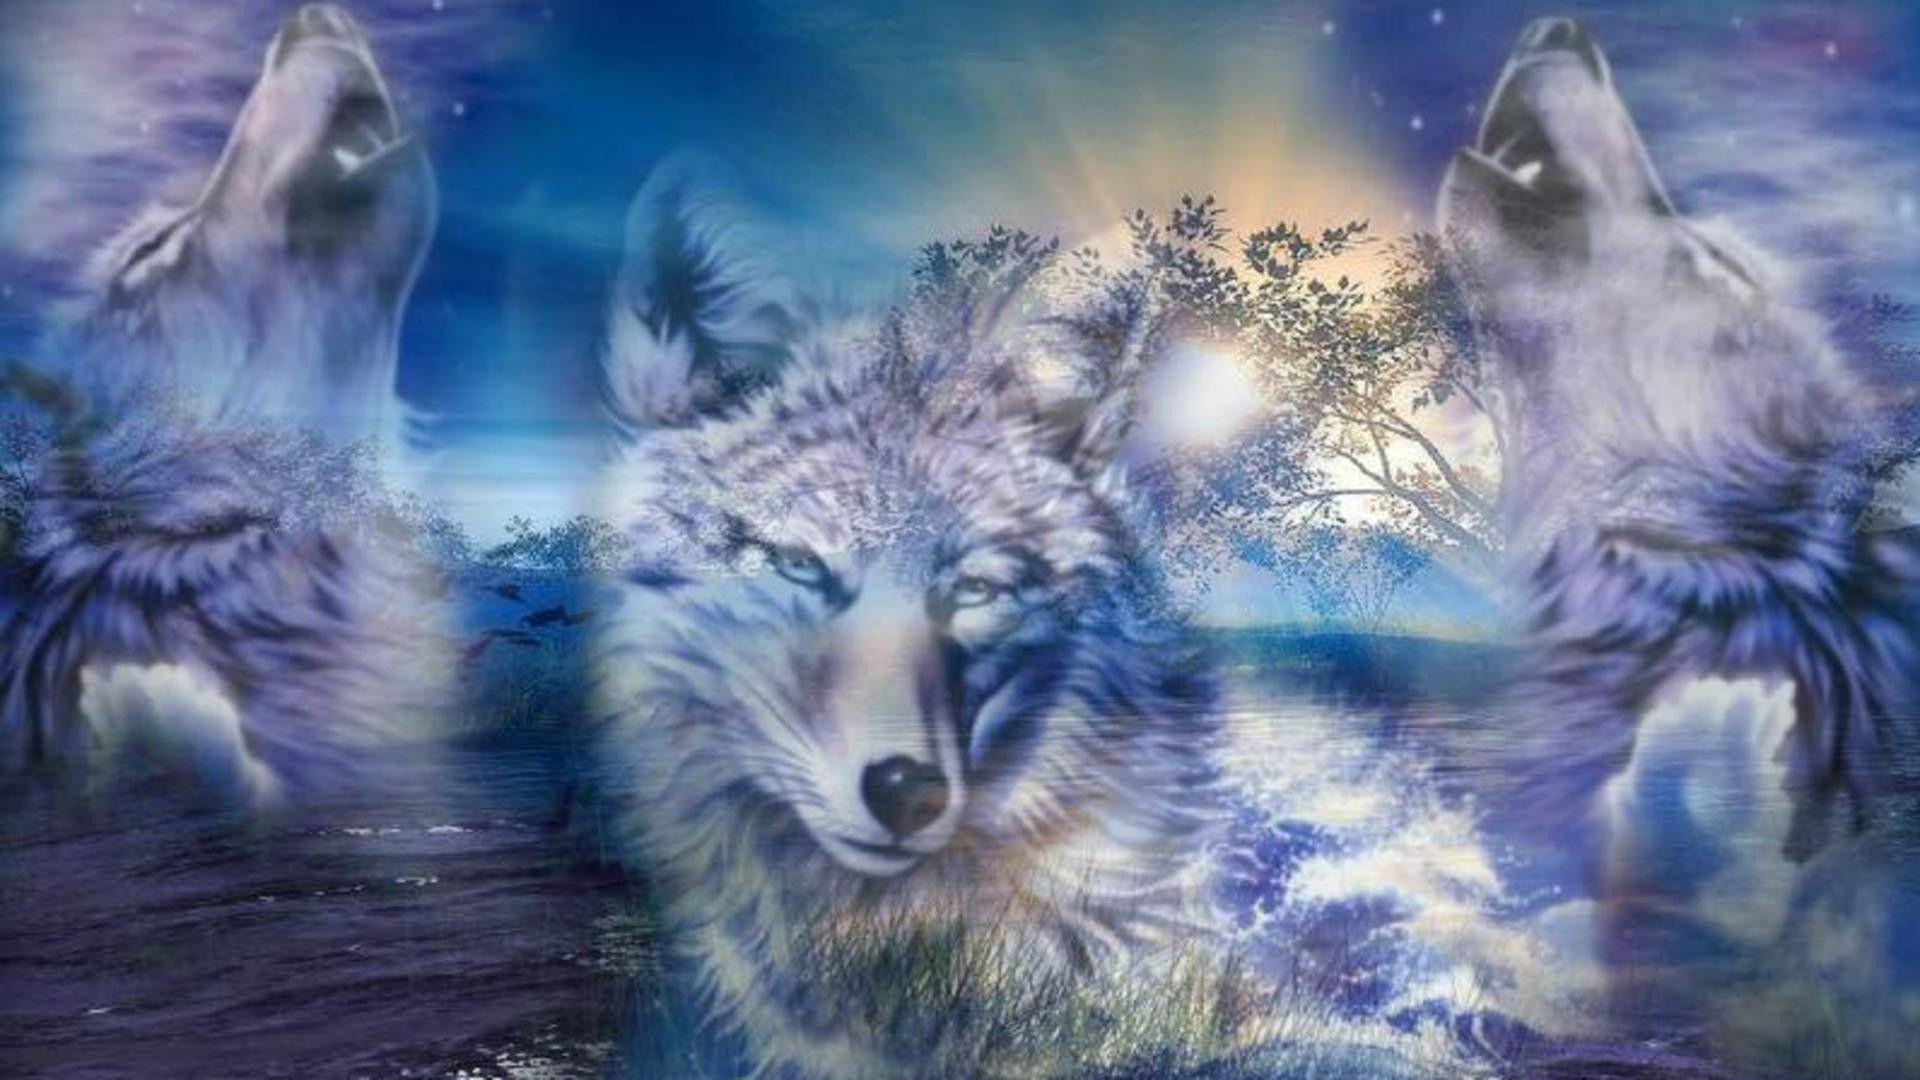 Wolf Wallpapers, Wolf Backgrounds, Wolf Images - Desktop Nexus